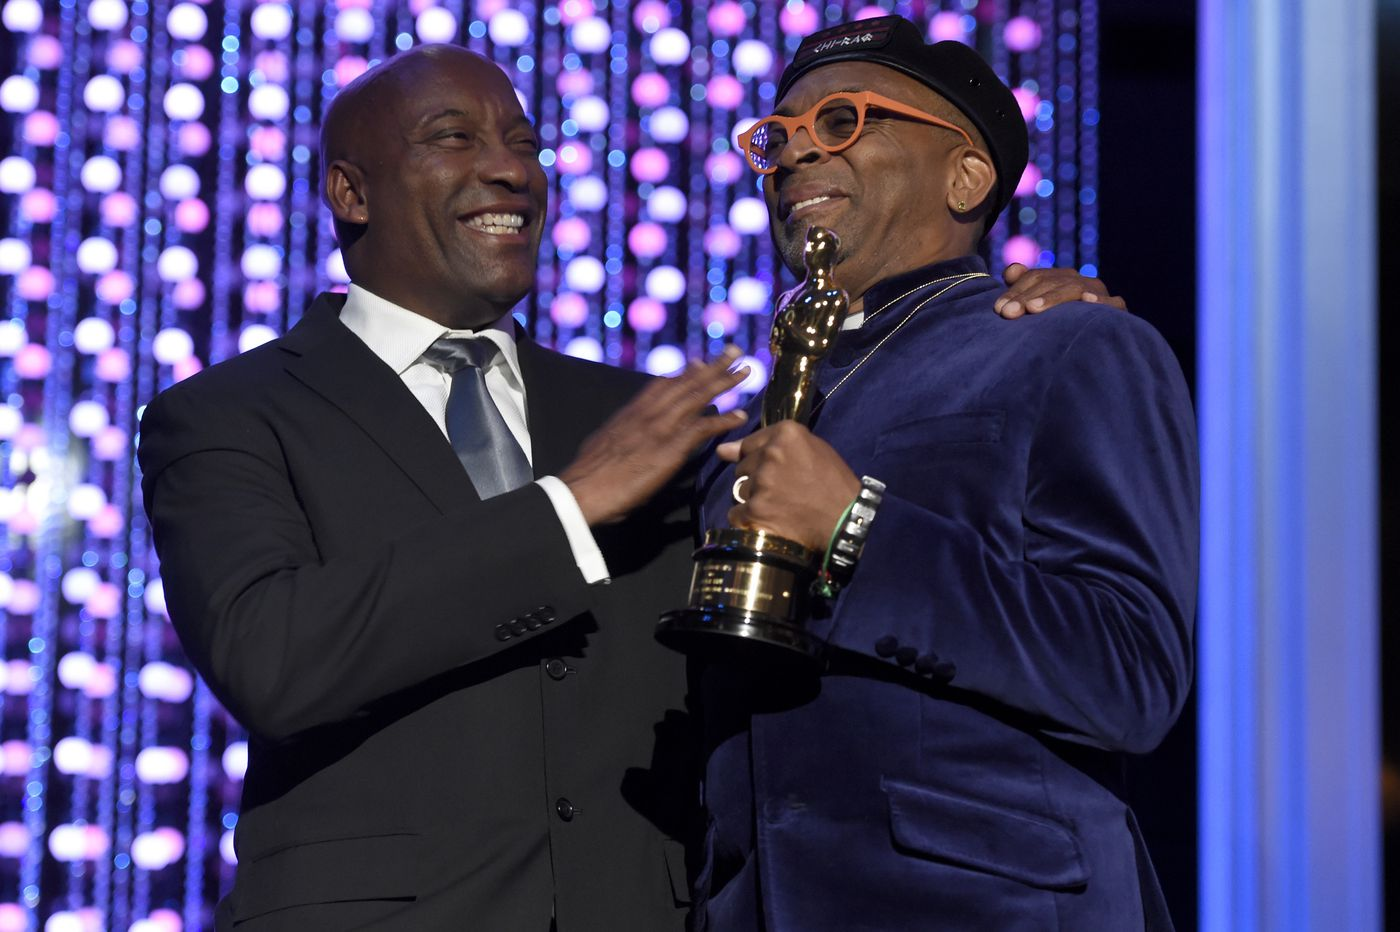 John Singleton paved the way for directors of color, like Jordan Peele and Ryan Coogler. They paid tribute to him after his death.